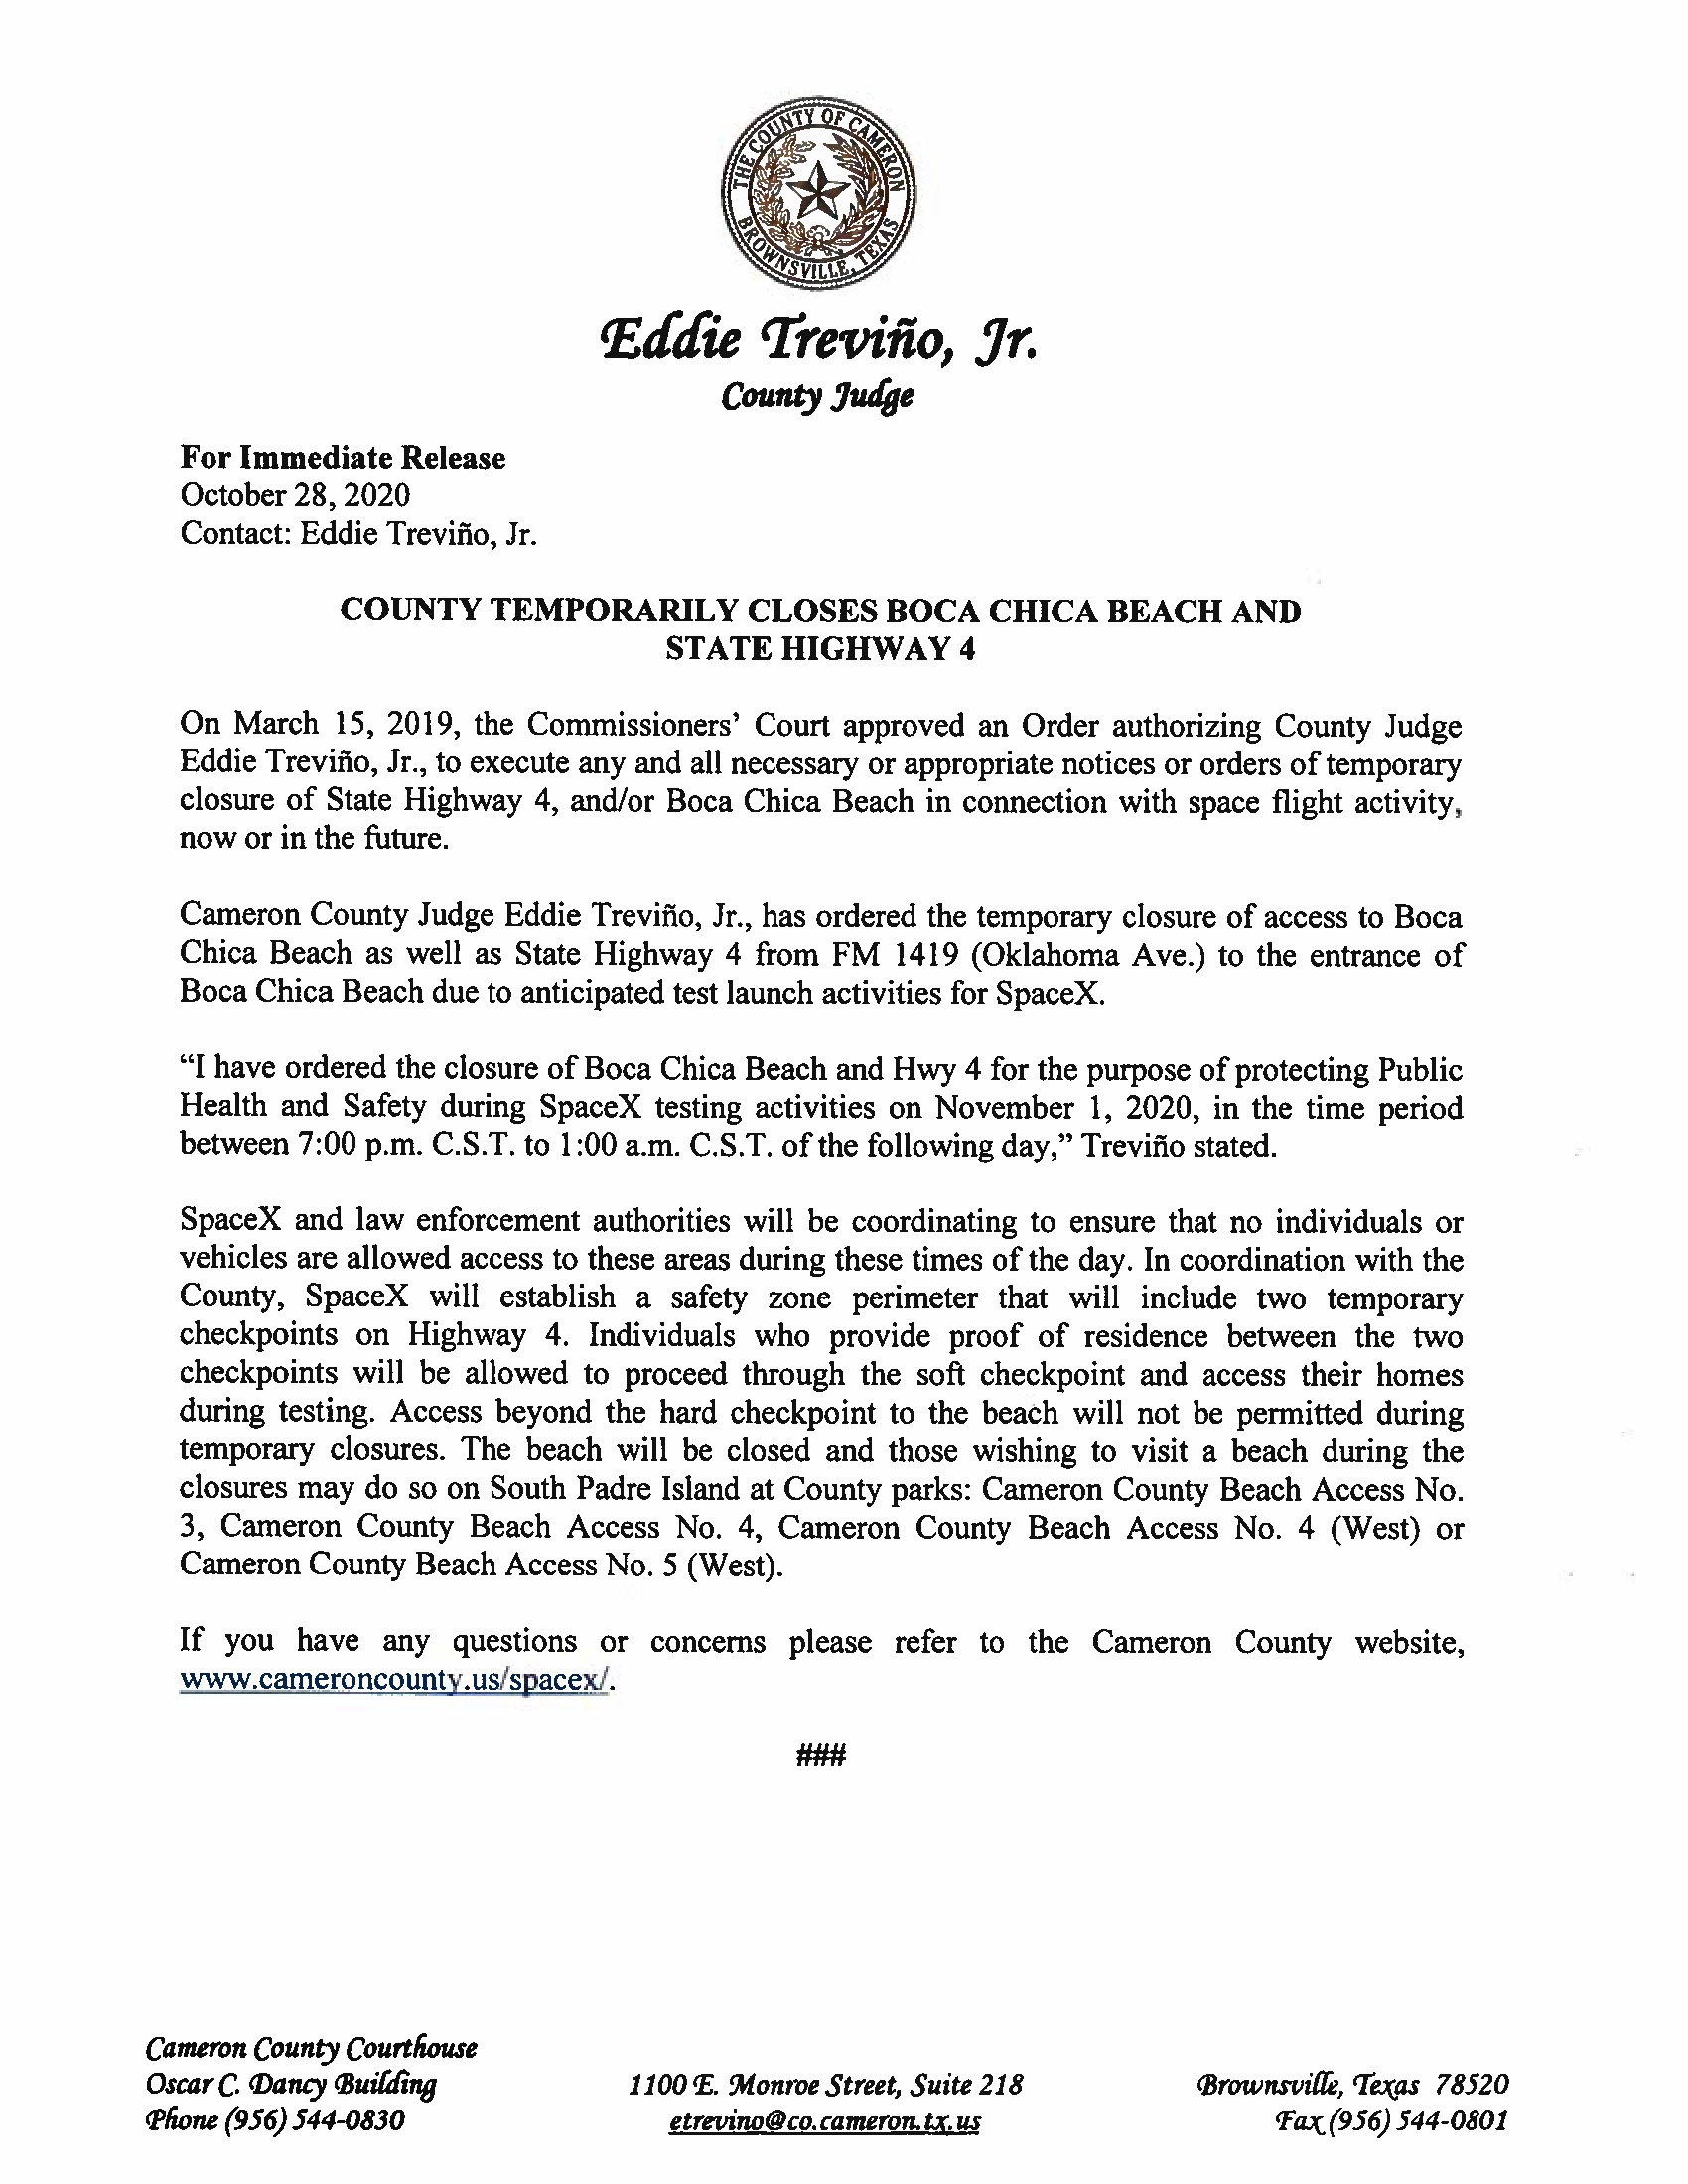 Press Release On Order Of Closure Related To SpaceX Flight.11.01.20.doc Page 1